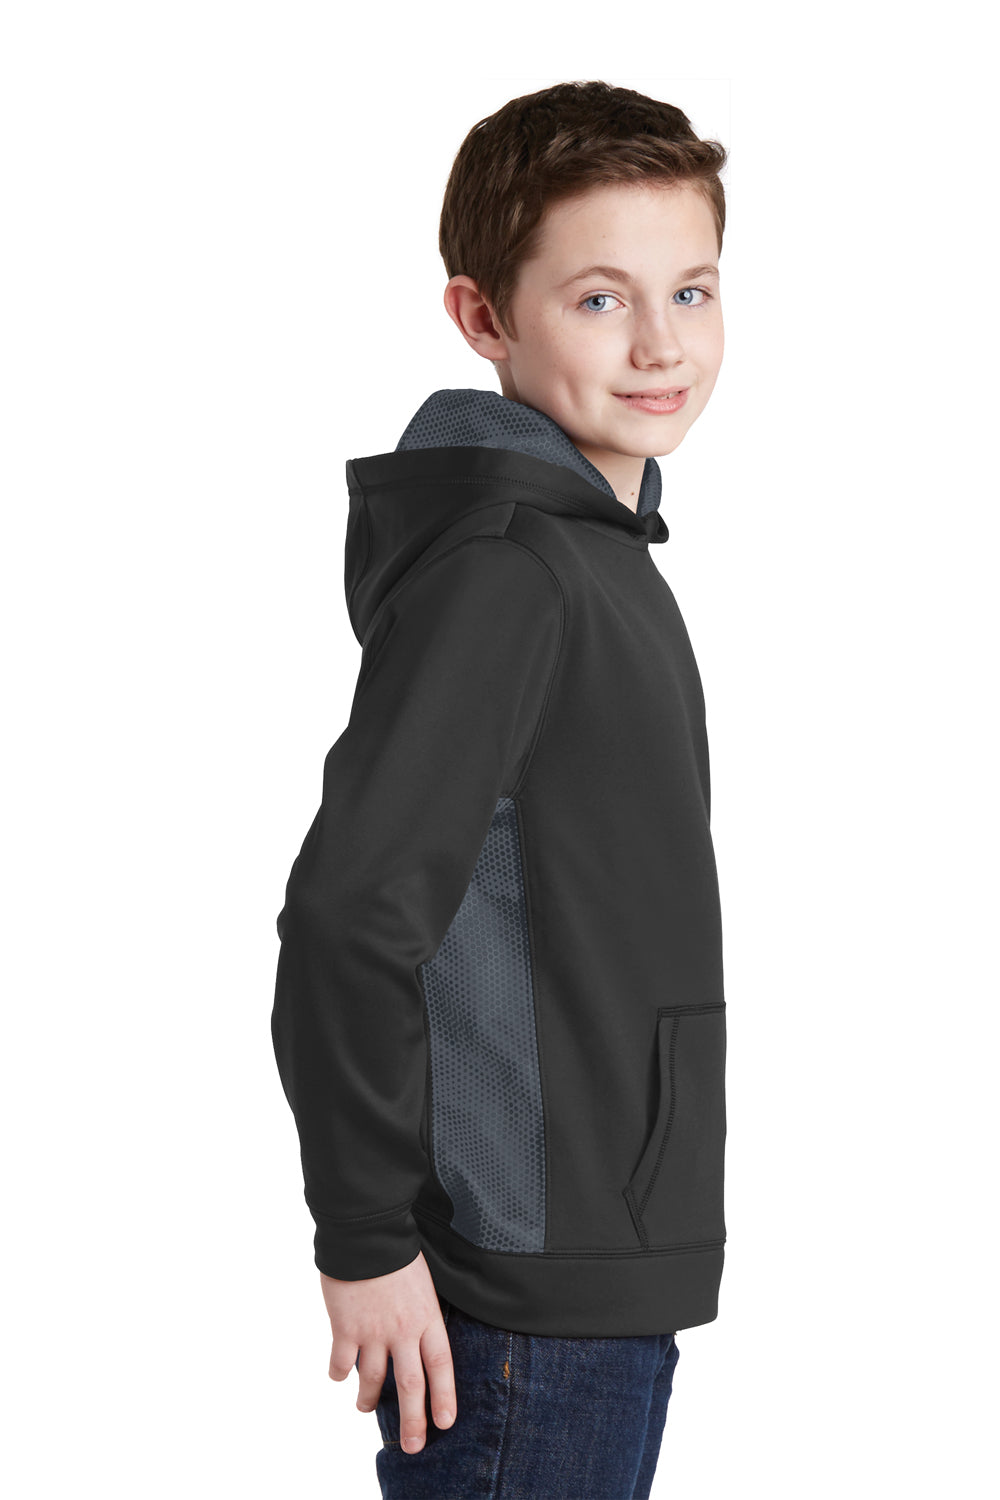 Sport-Tek YST239 Youth Sport-Wick CamoHex Moisture Wicking Fleece Hooded Sweatshirt Hoodie Black/Grey Side